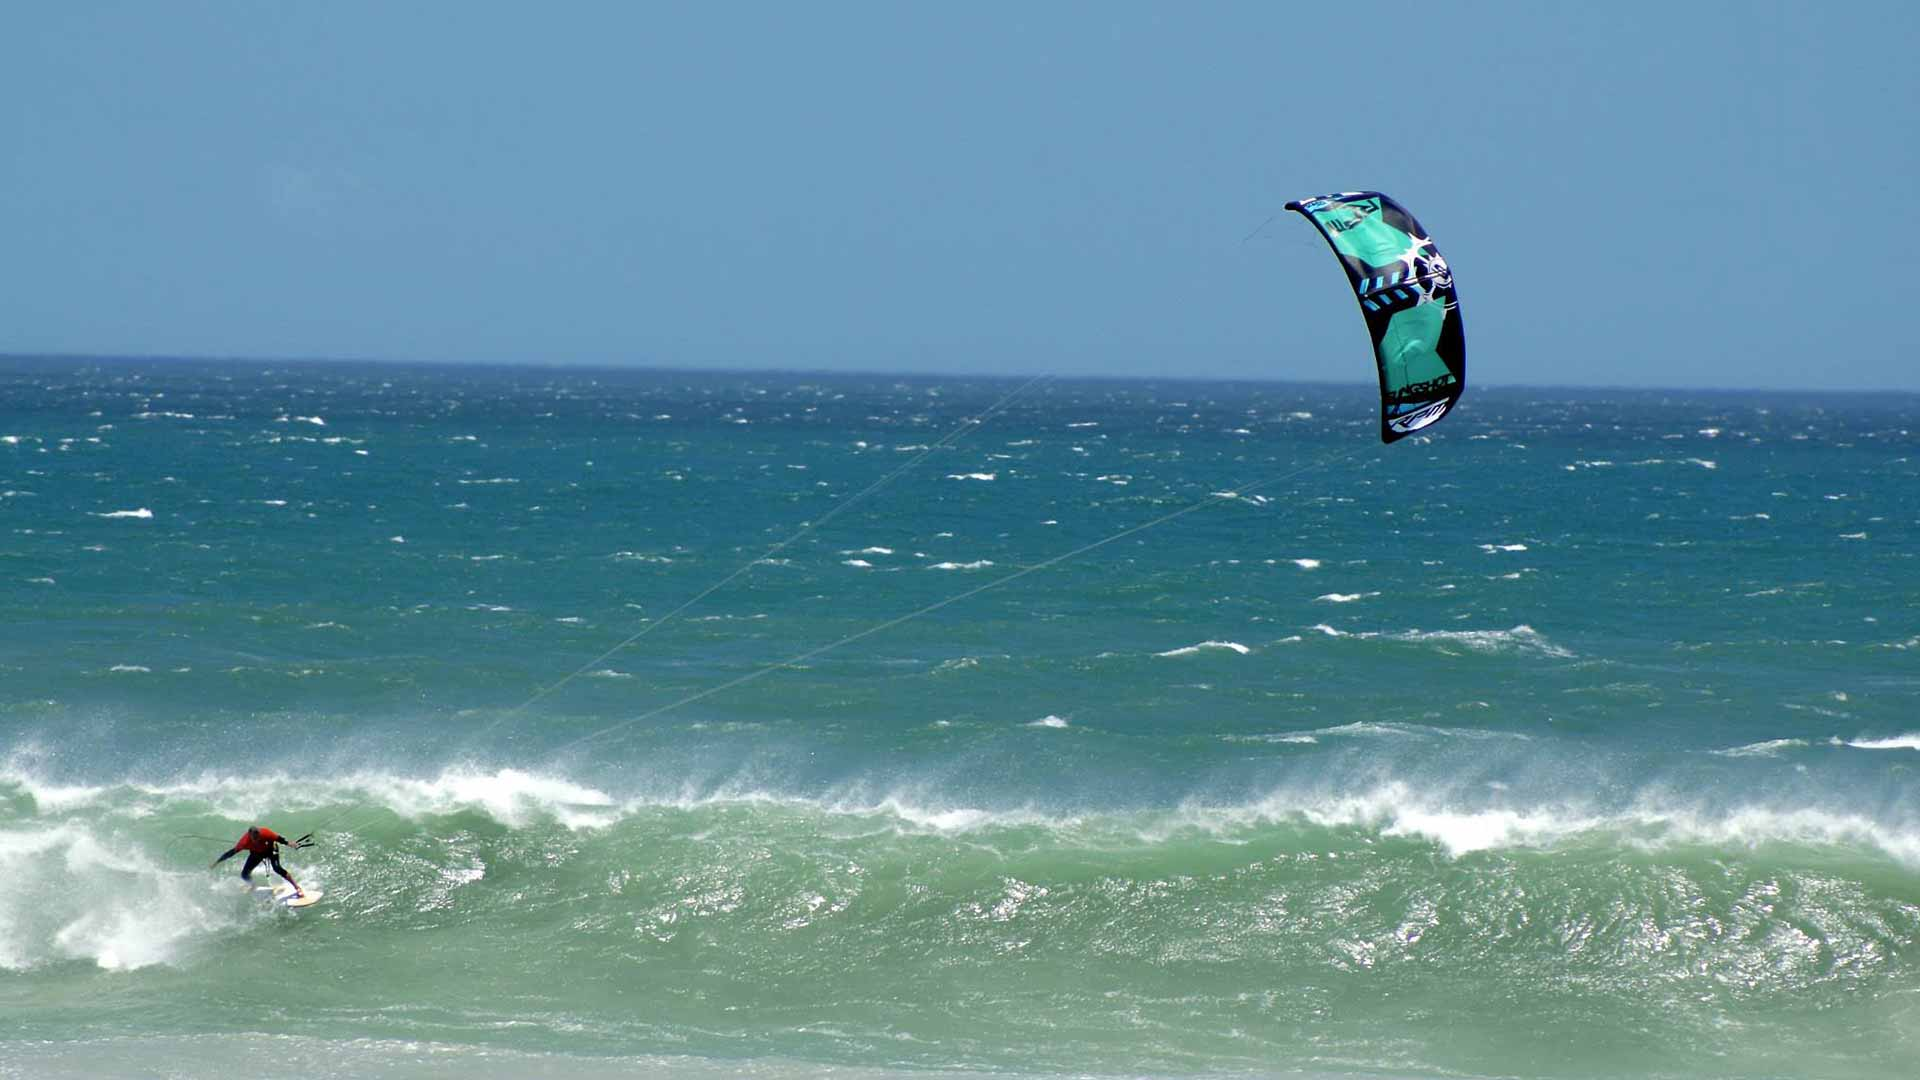 learn_wave_kitesurfing_W4c